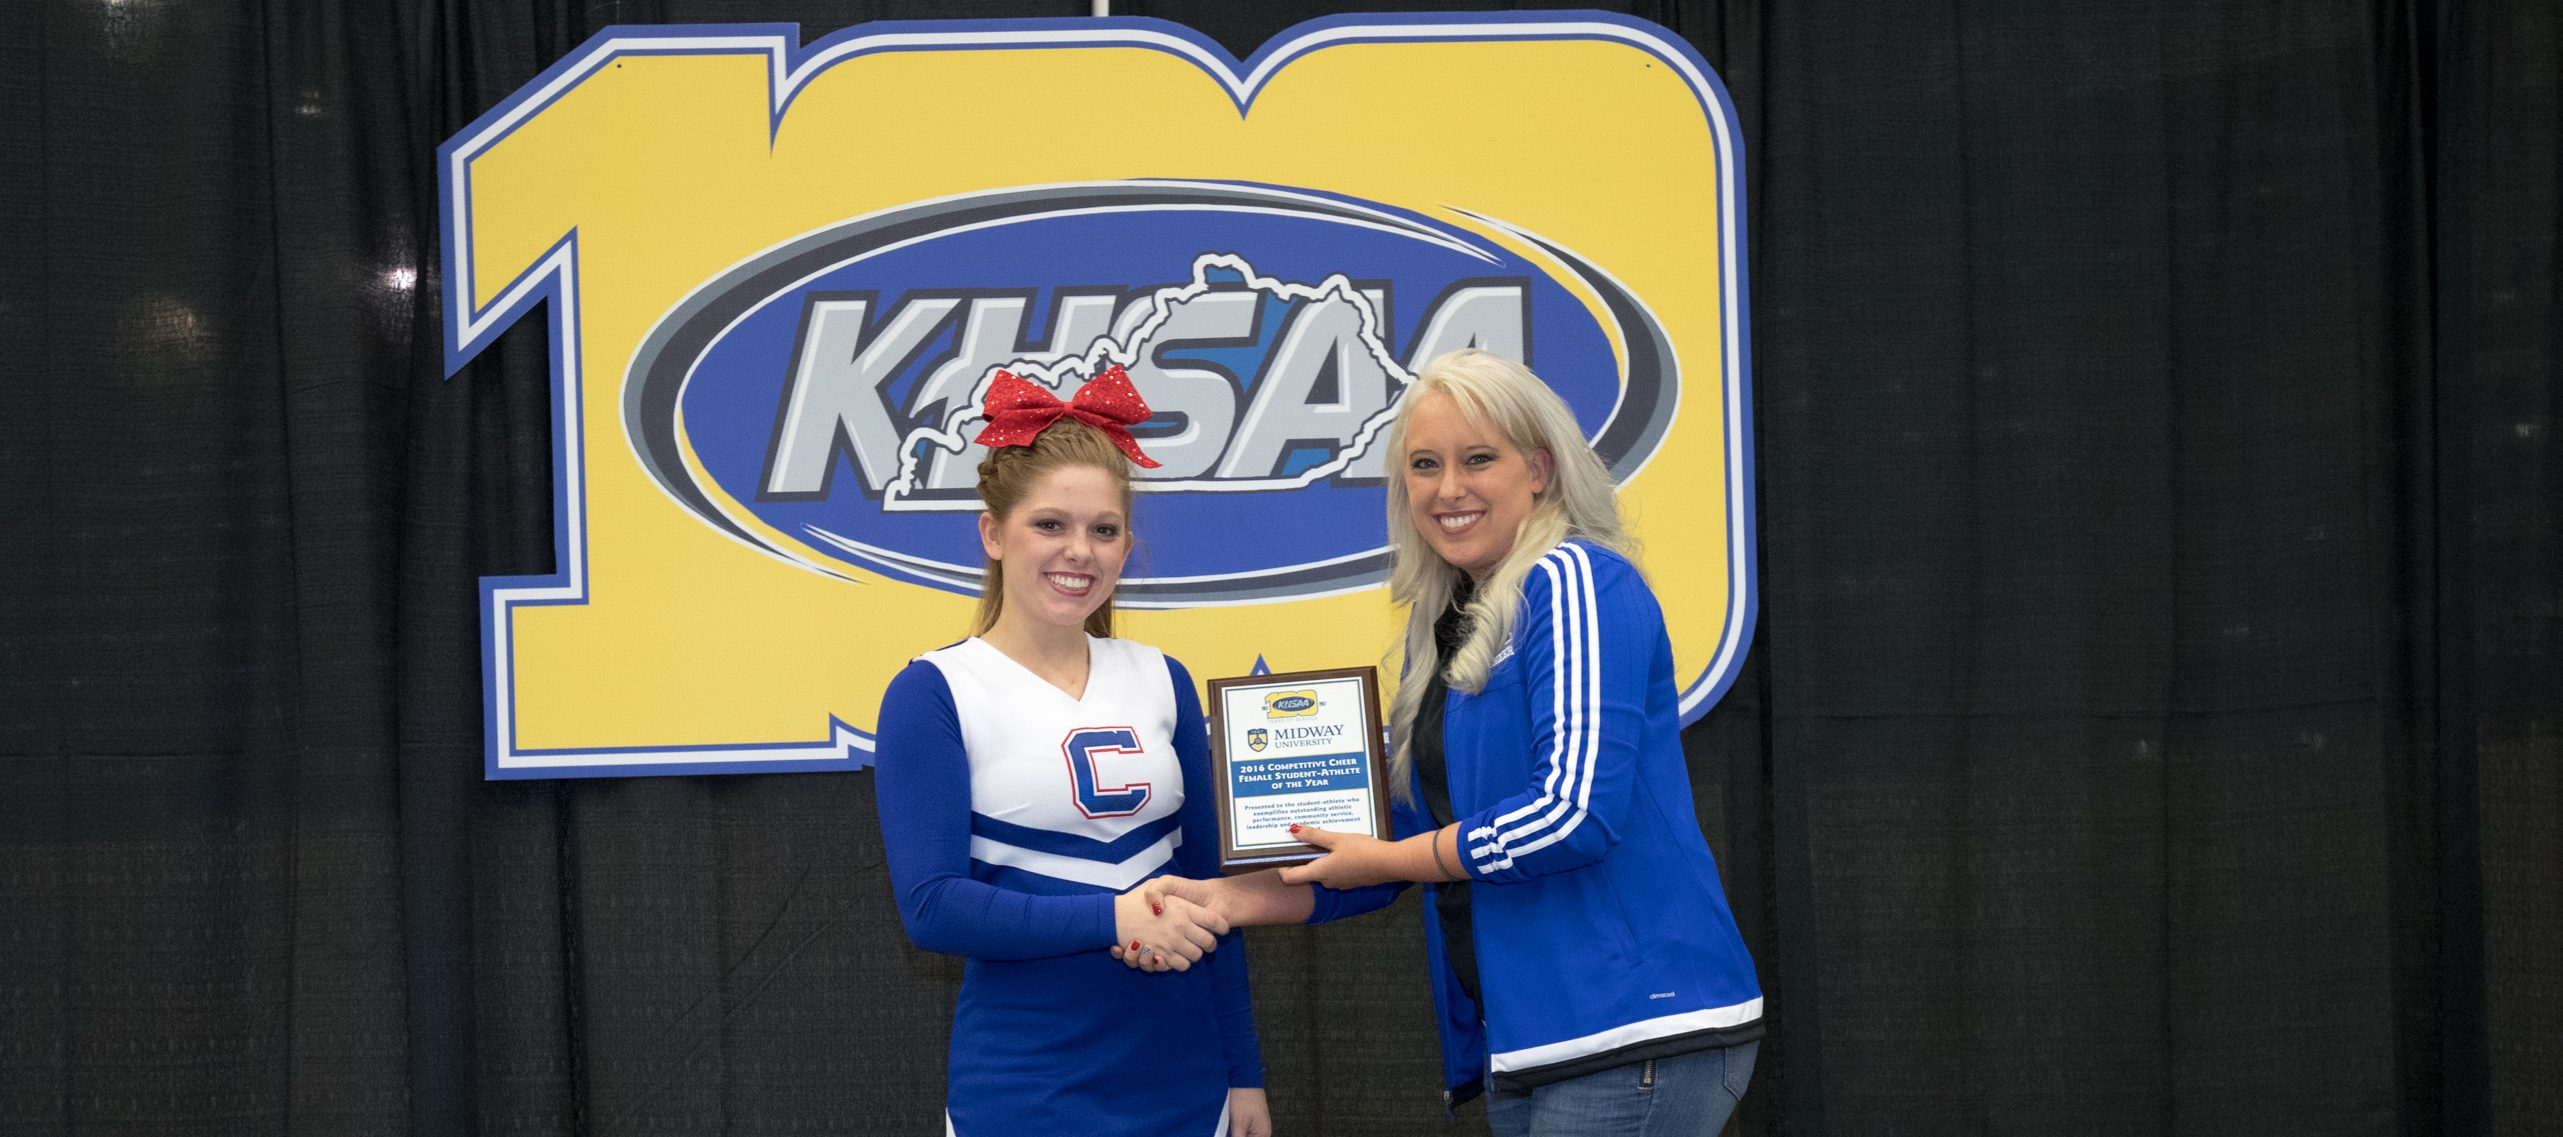 Midway University/KHSAA Female Student-Athlete of the Year Awards